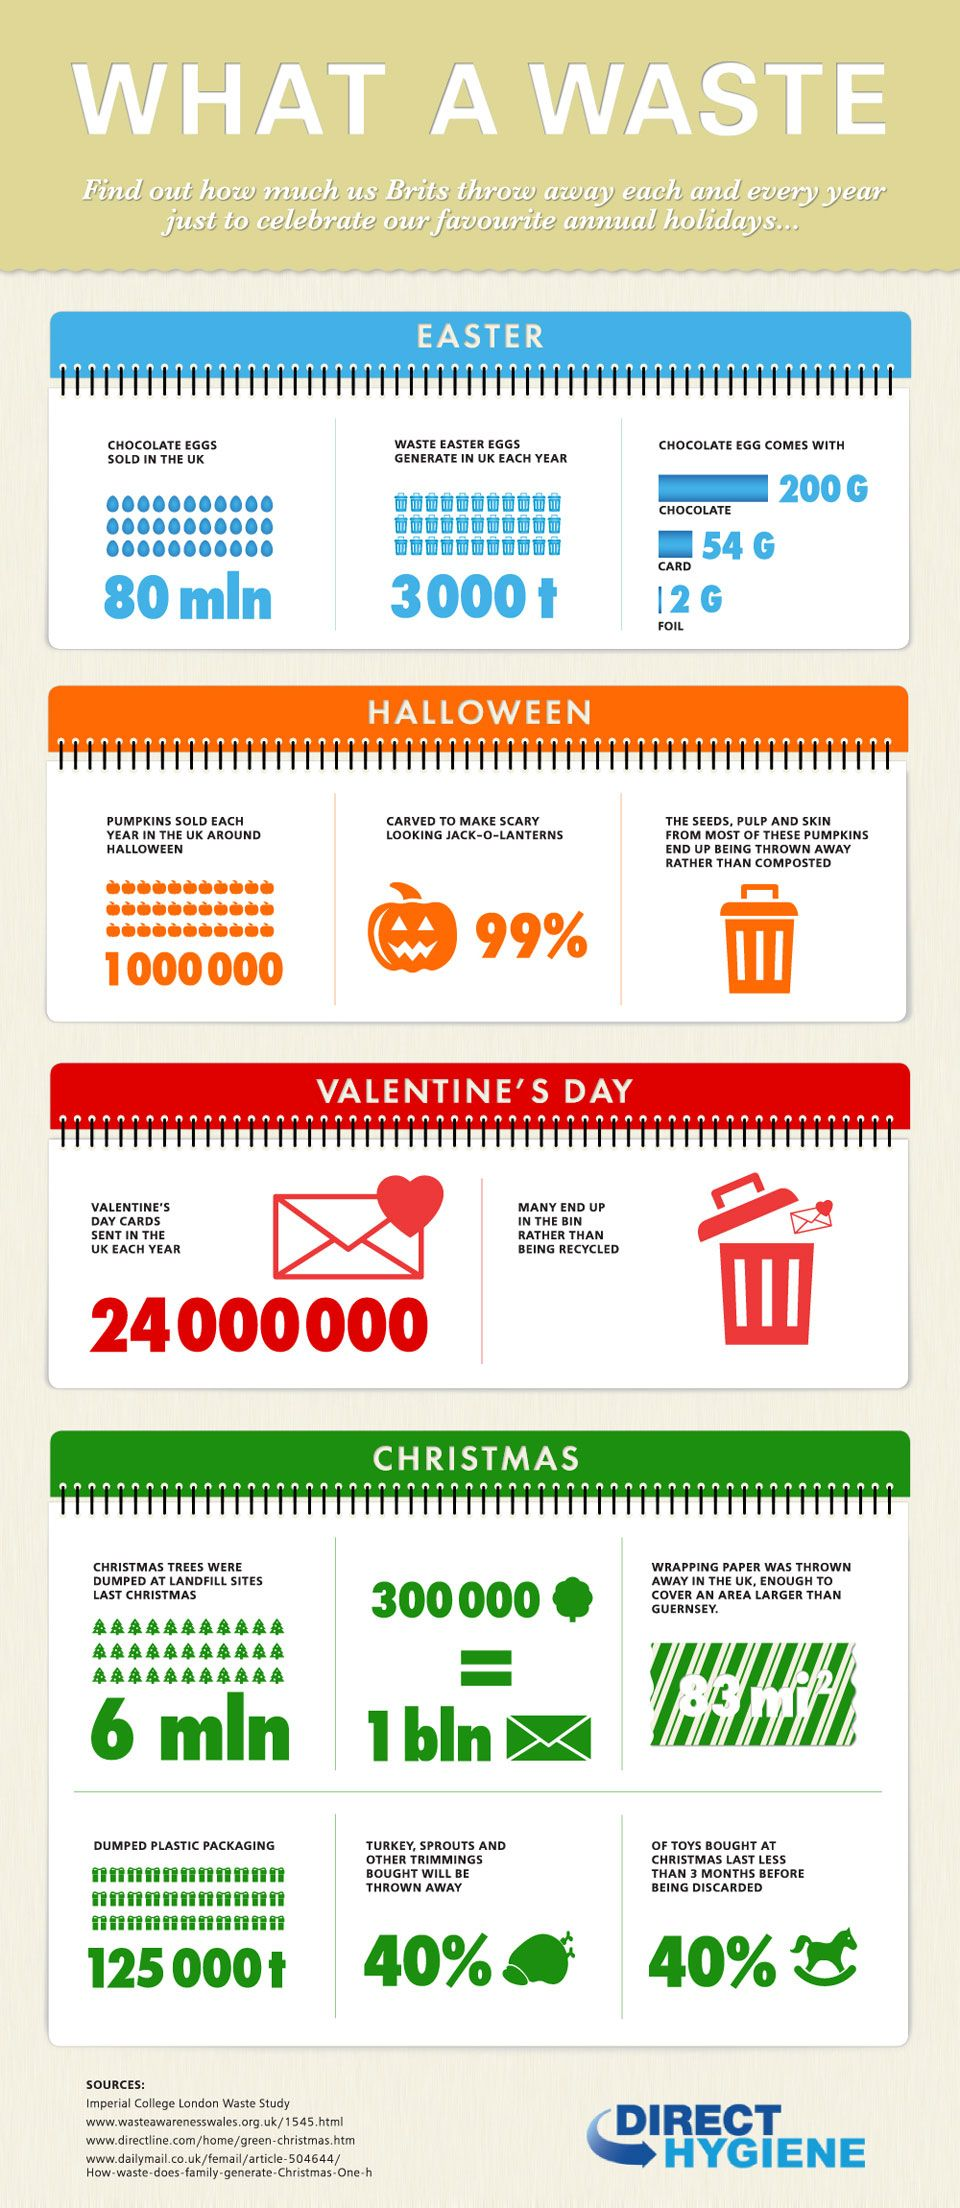 Holiday WASTE Learn more about recycling and its effects